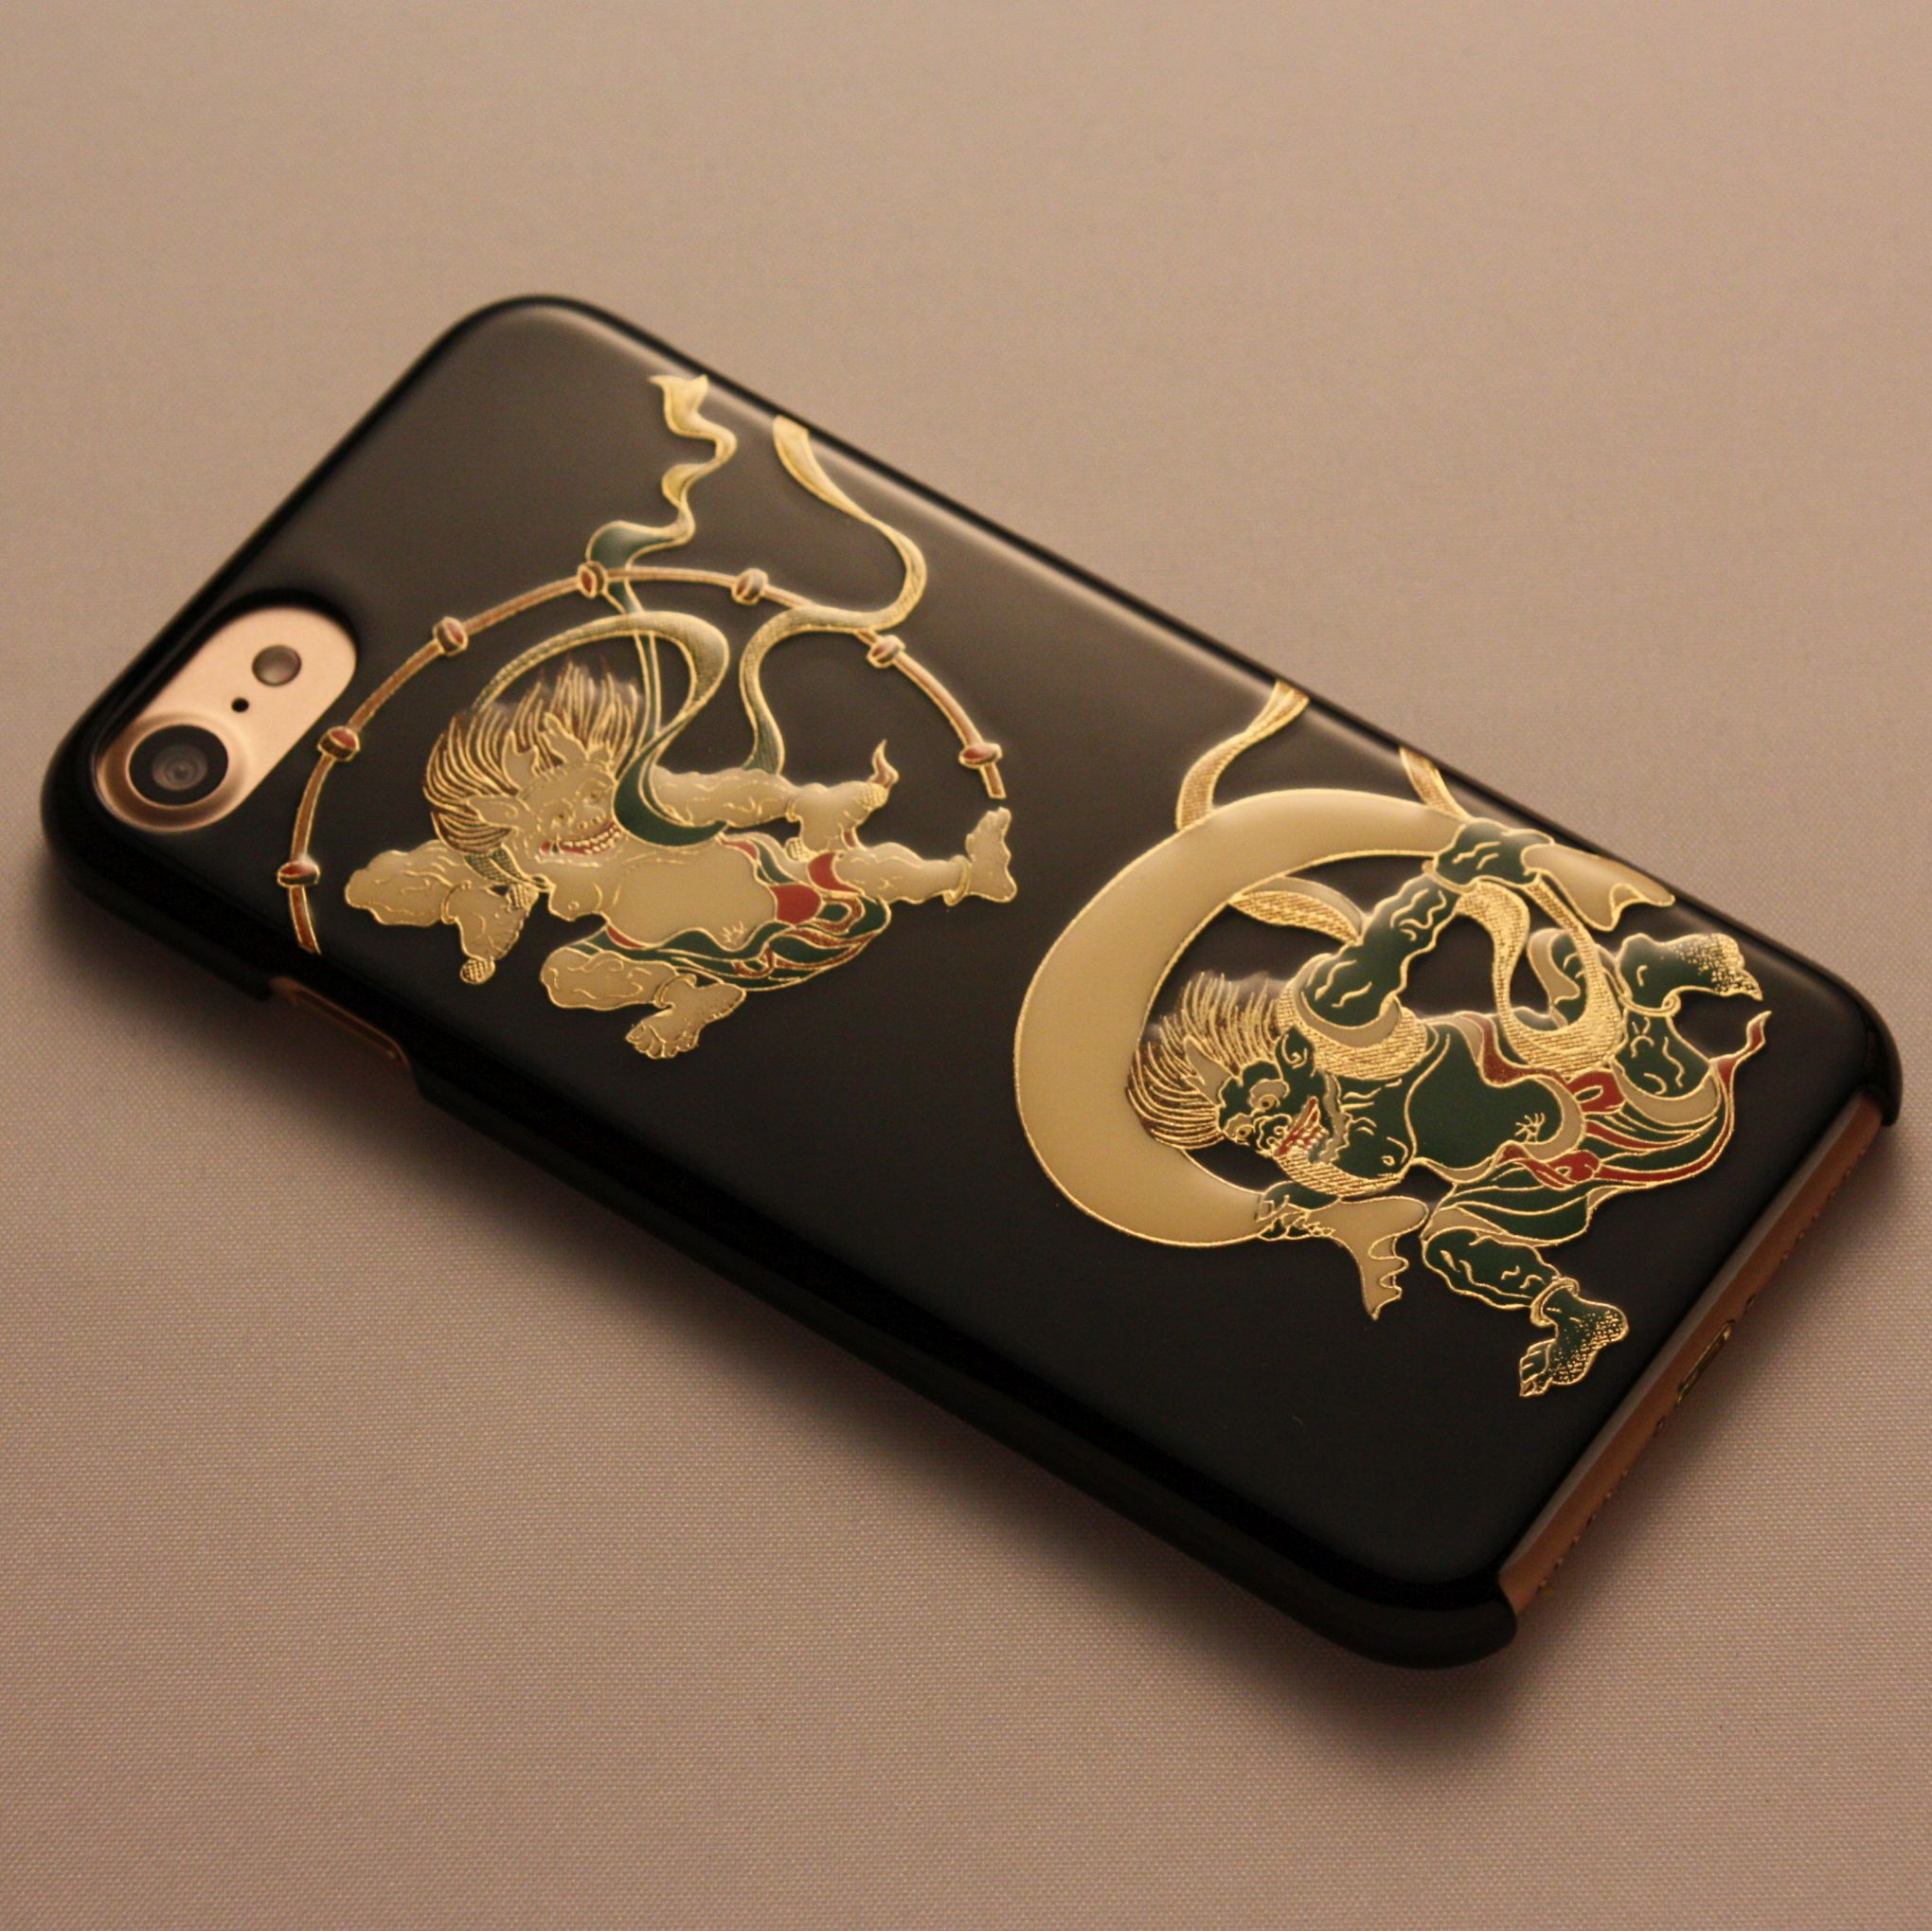 ◆◇◆ iPhone cases SE (2nd generation) ◆◇◆